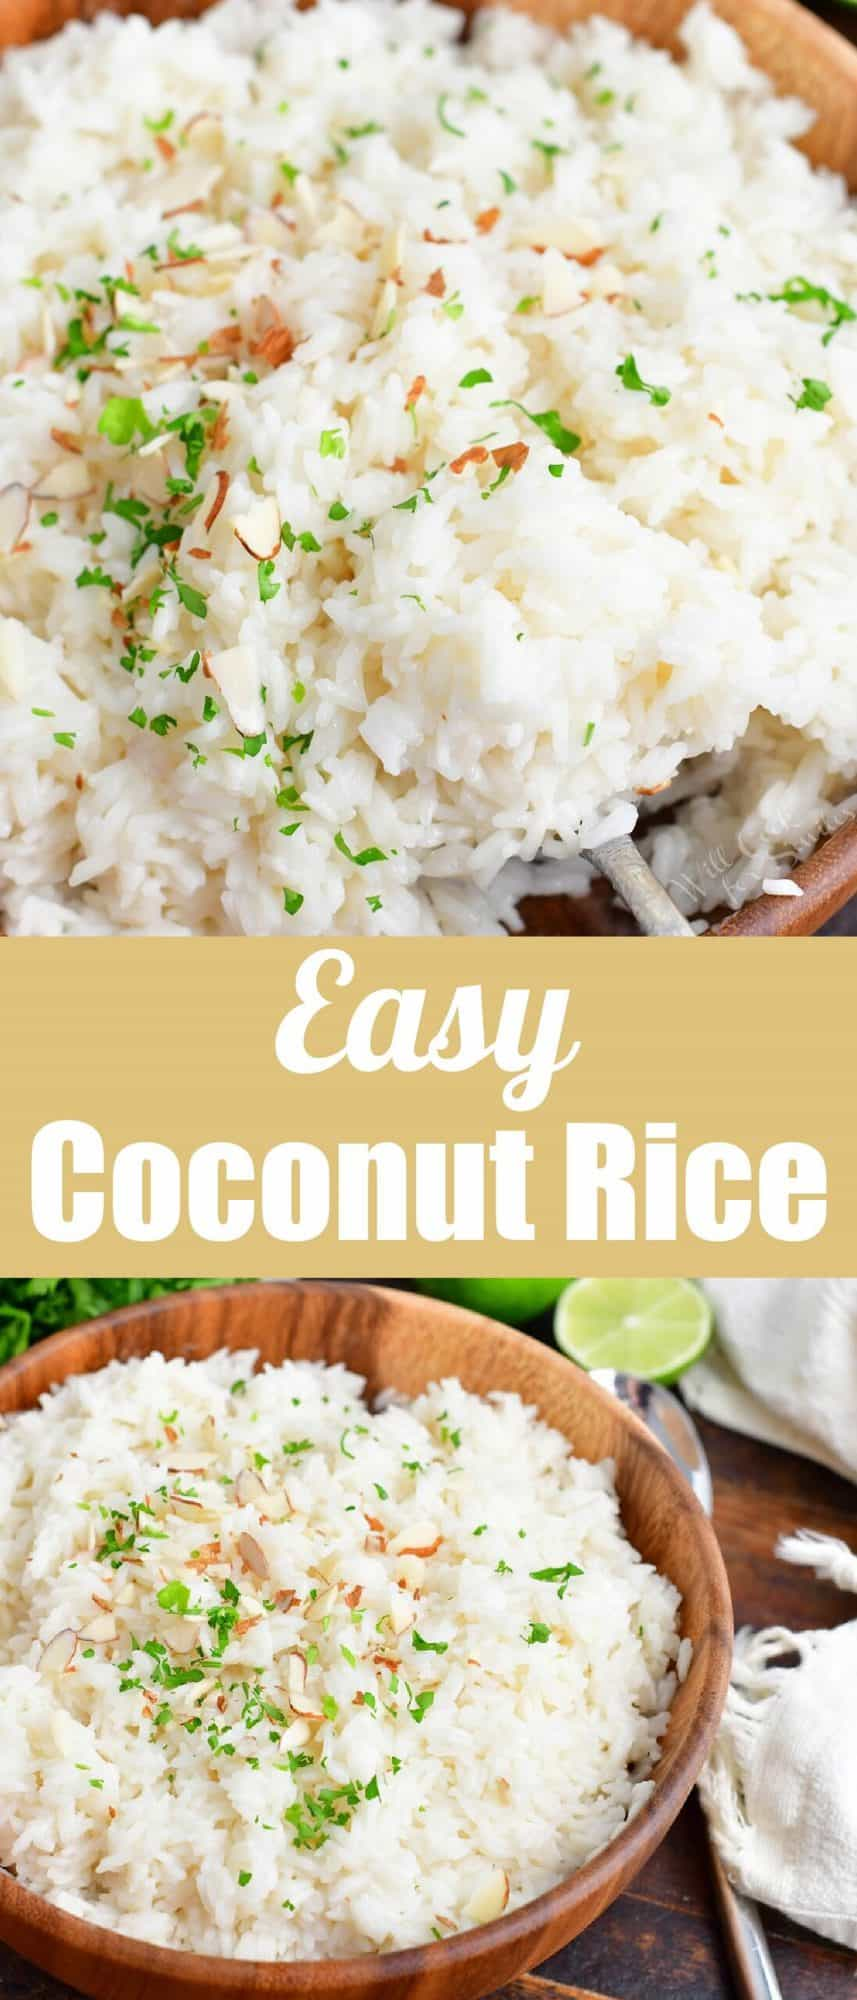 title collage of closeup view of coconut rice and rice in a wooden bowl